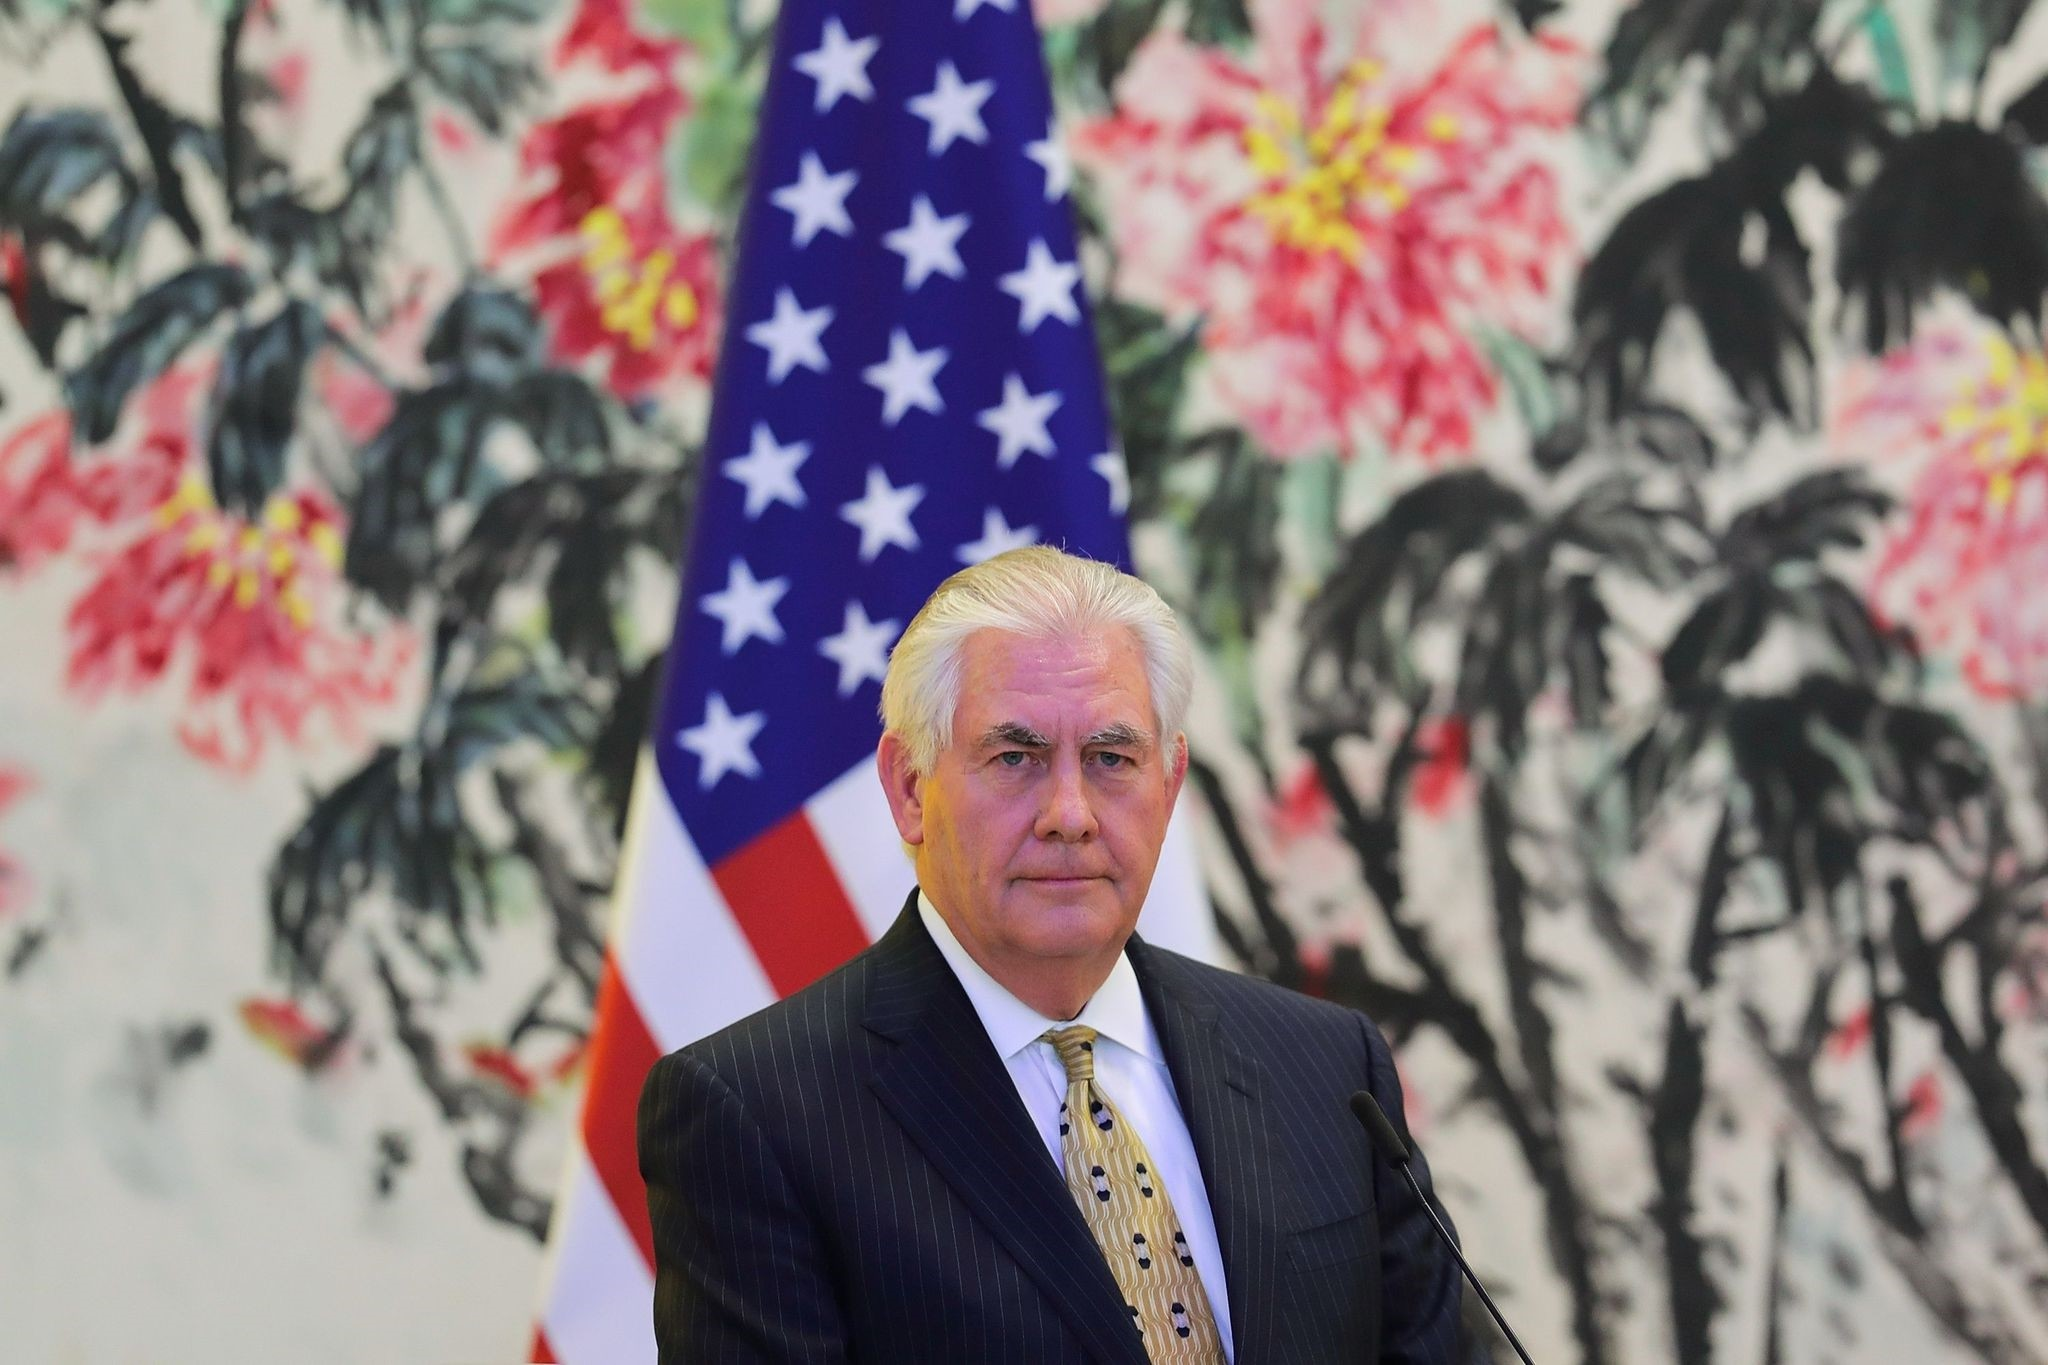 U.S. Secretary of State Rex Tillerson looks on during a joint press conference with China's Foreign Minister Wang Yi. (AFP Photo)